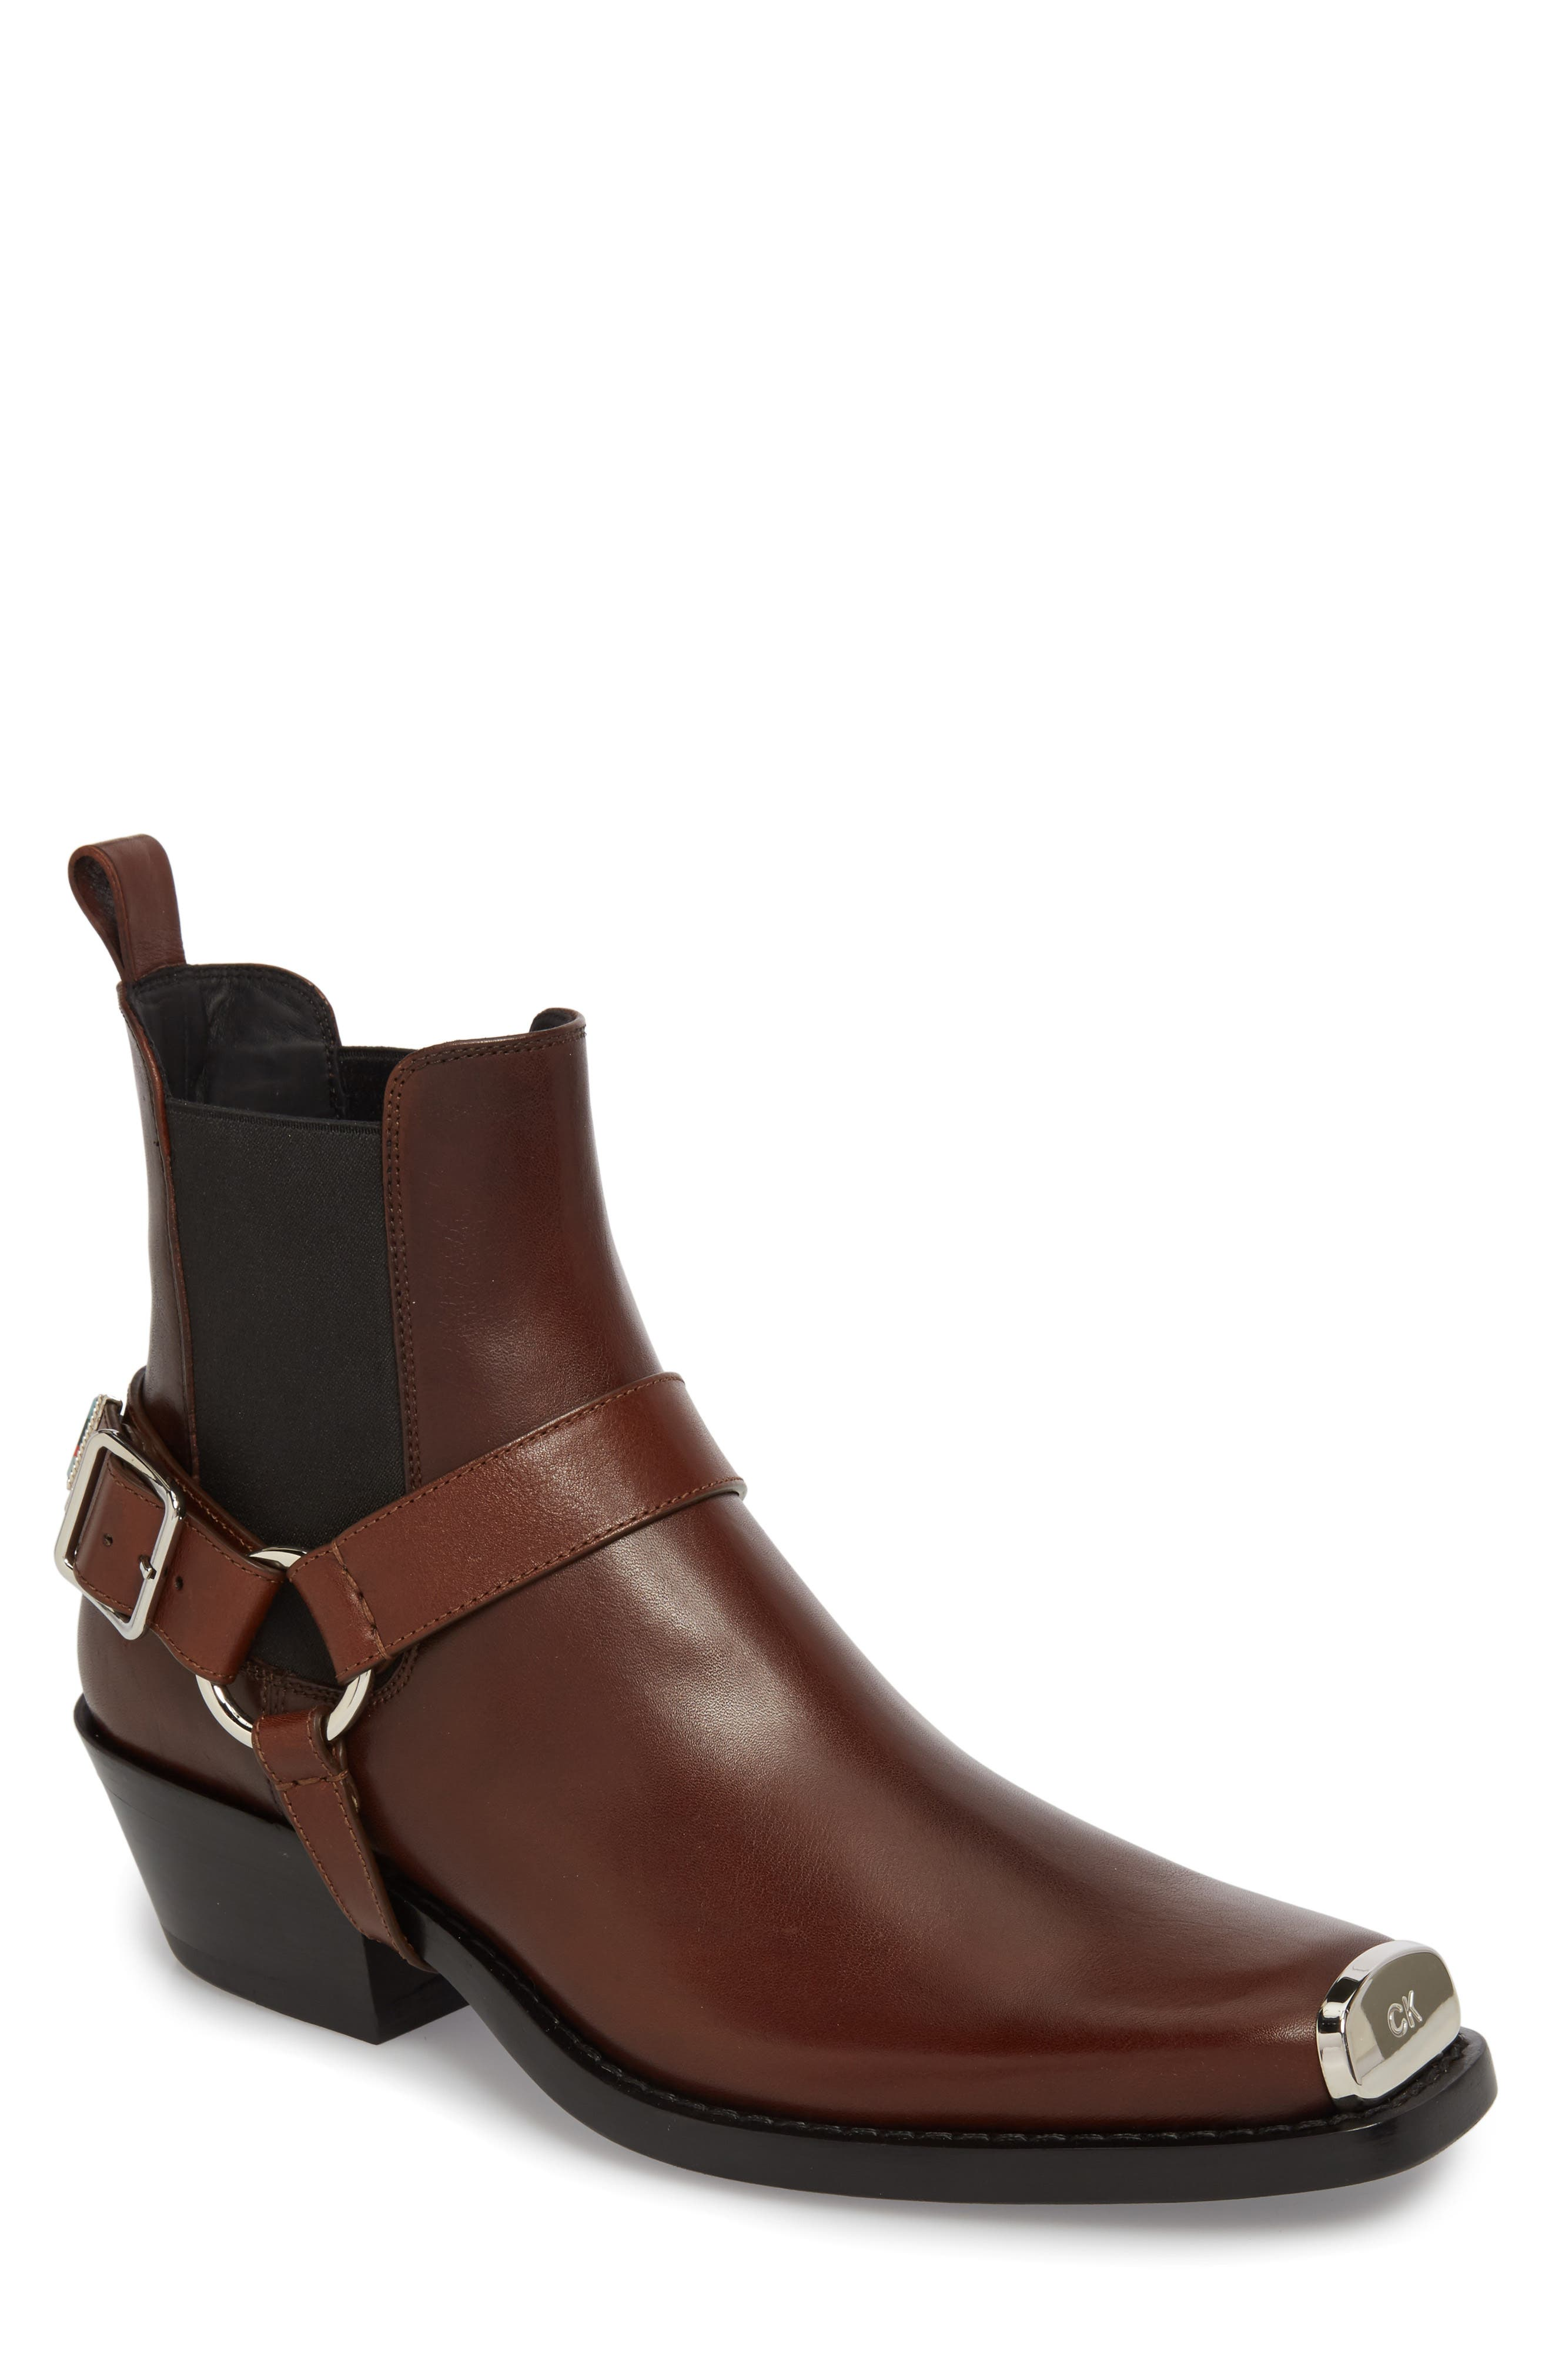 Alternate Image 1 Selected - CALVIN KLEIN 205W39NYC Harness Chelsea Boot (Men)